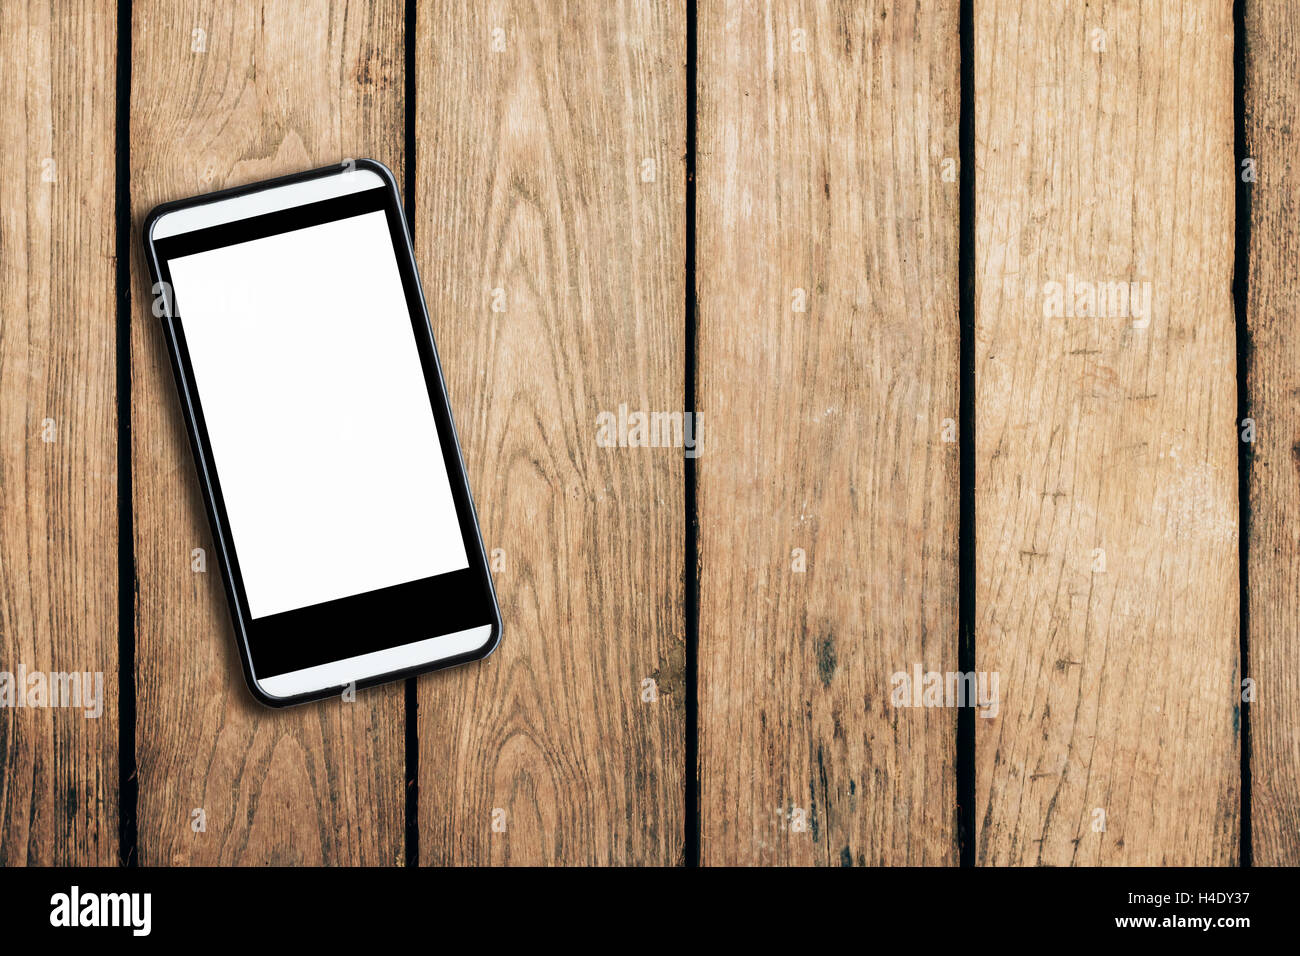 cell phone on wooden table texture background with space. - Stock Image